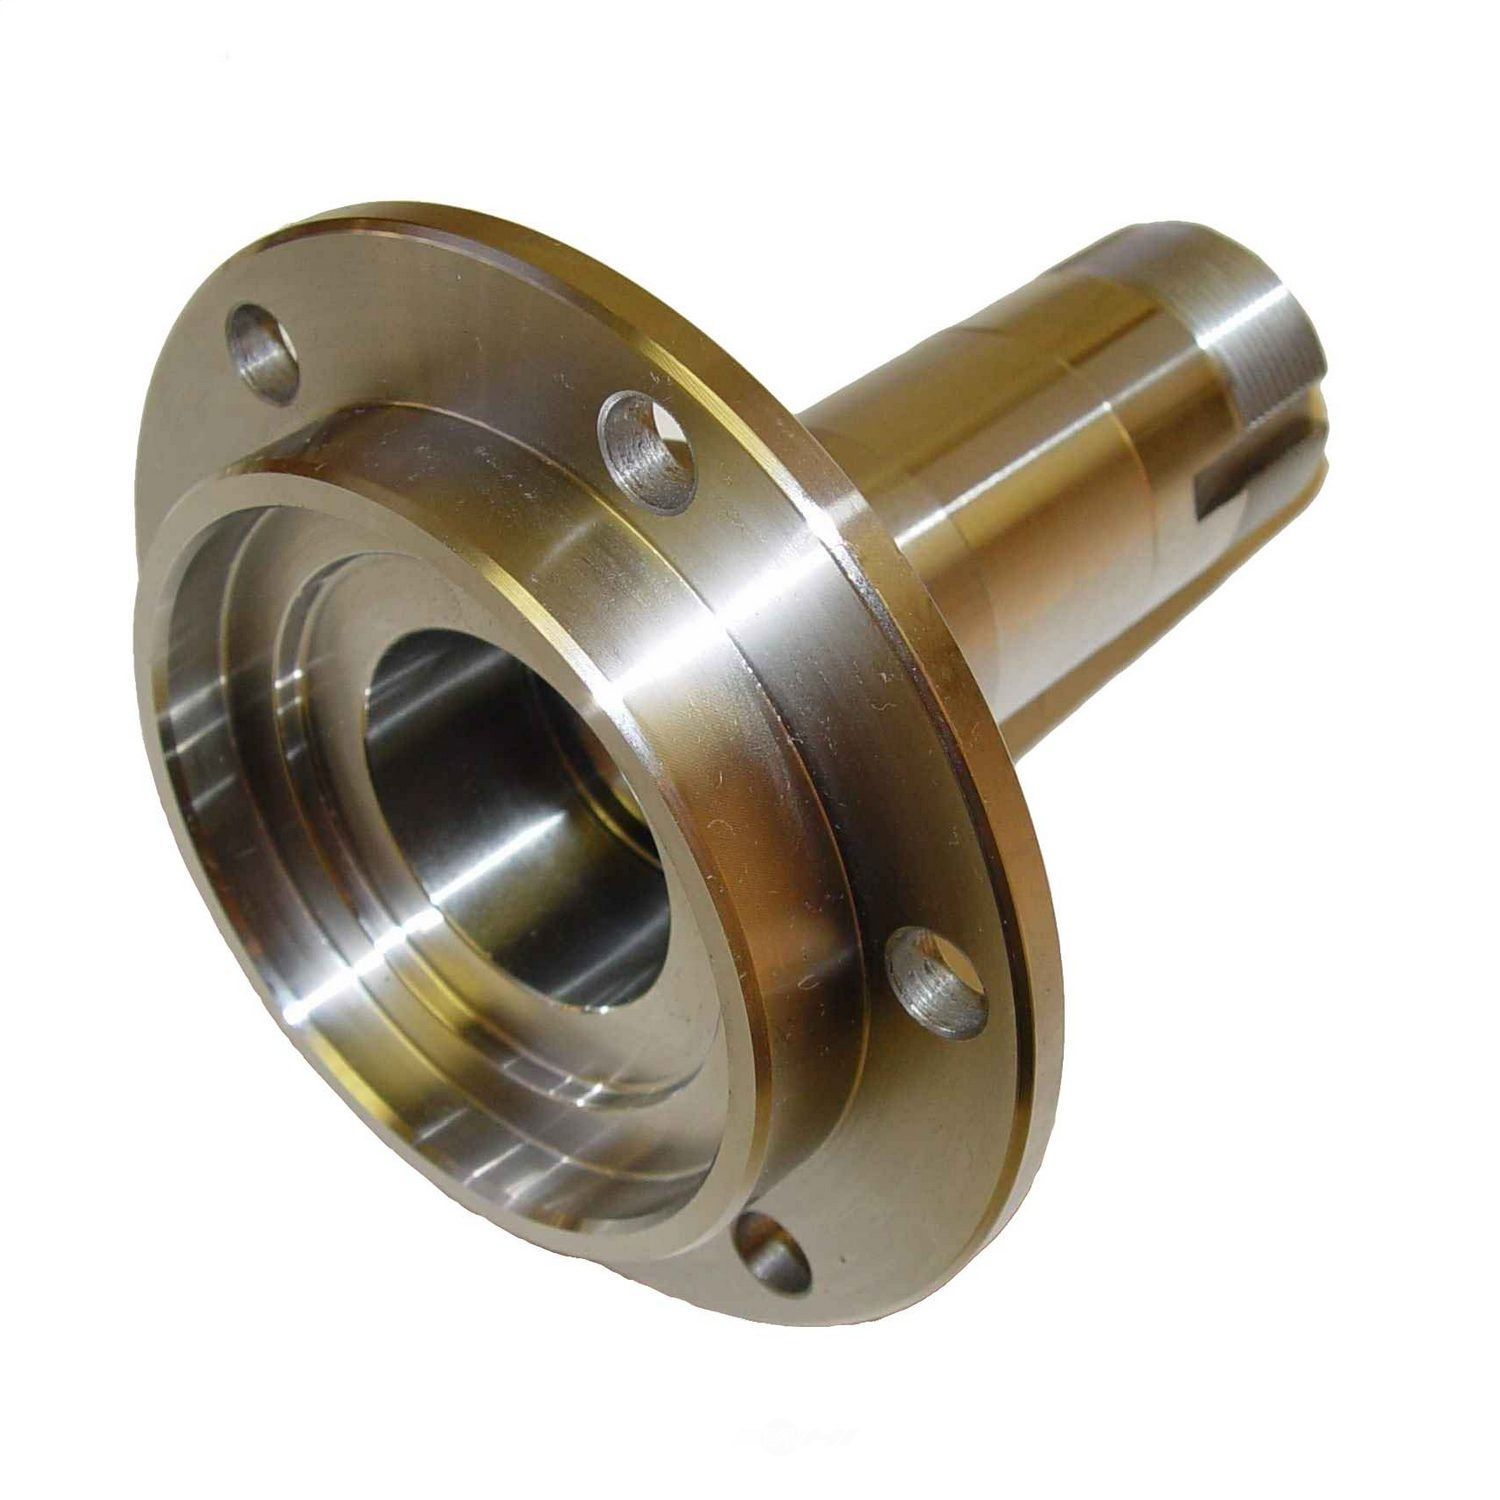 OMIX - Axle Spindle - OMX 16529.06